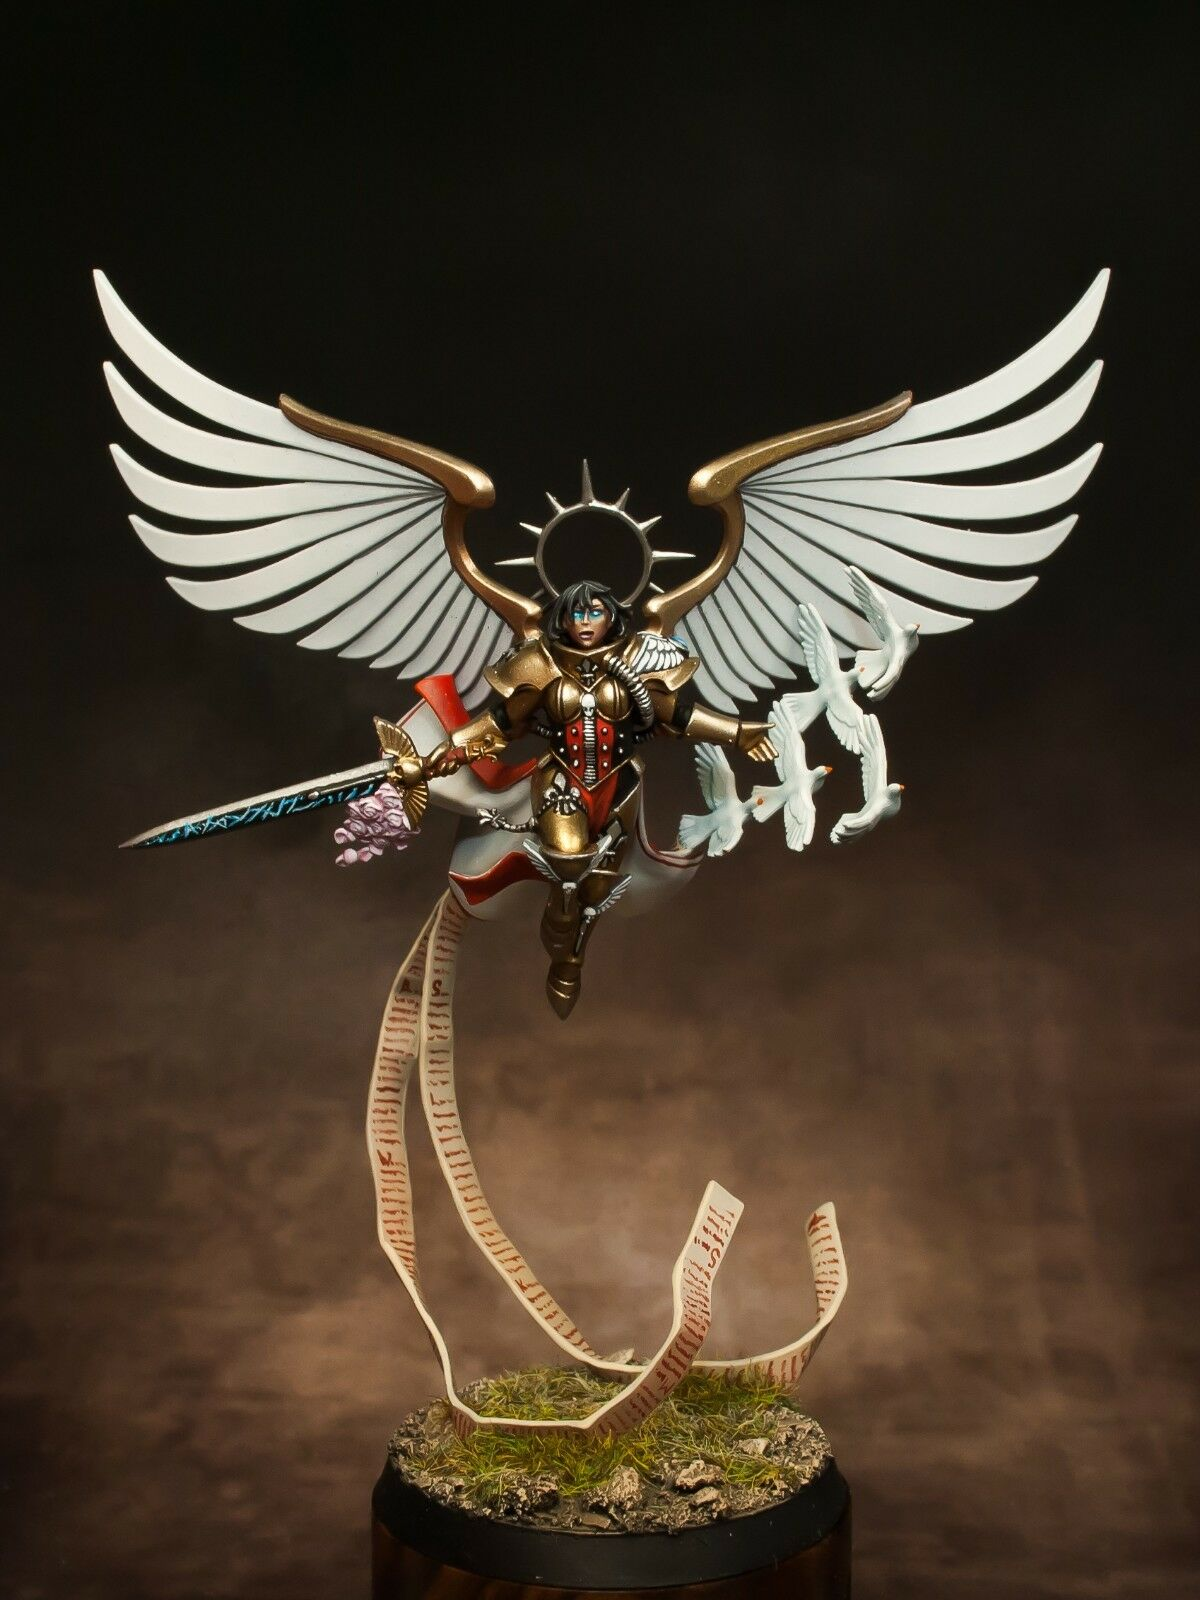 Triumvirate Triumvirate Triumvirate of the Imperium Celestine paint Warhammer 40k GW Games Workshop 2193 49e3d6